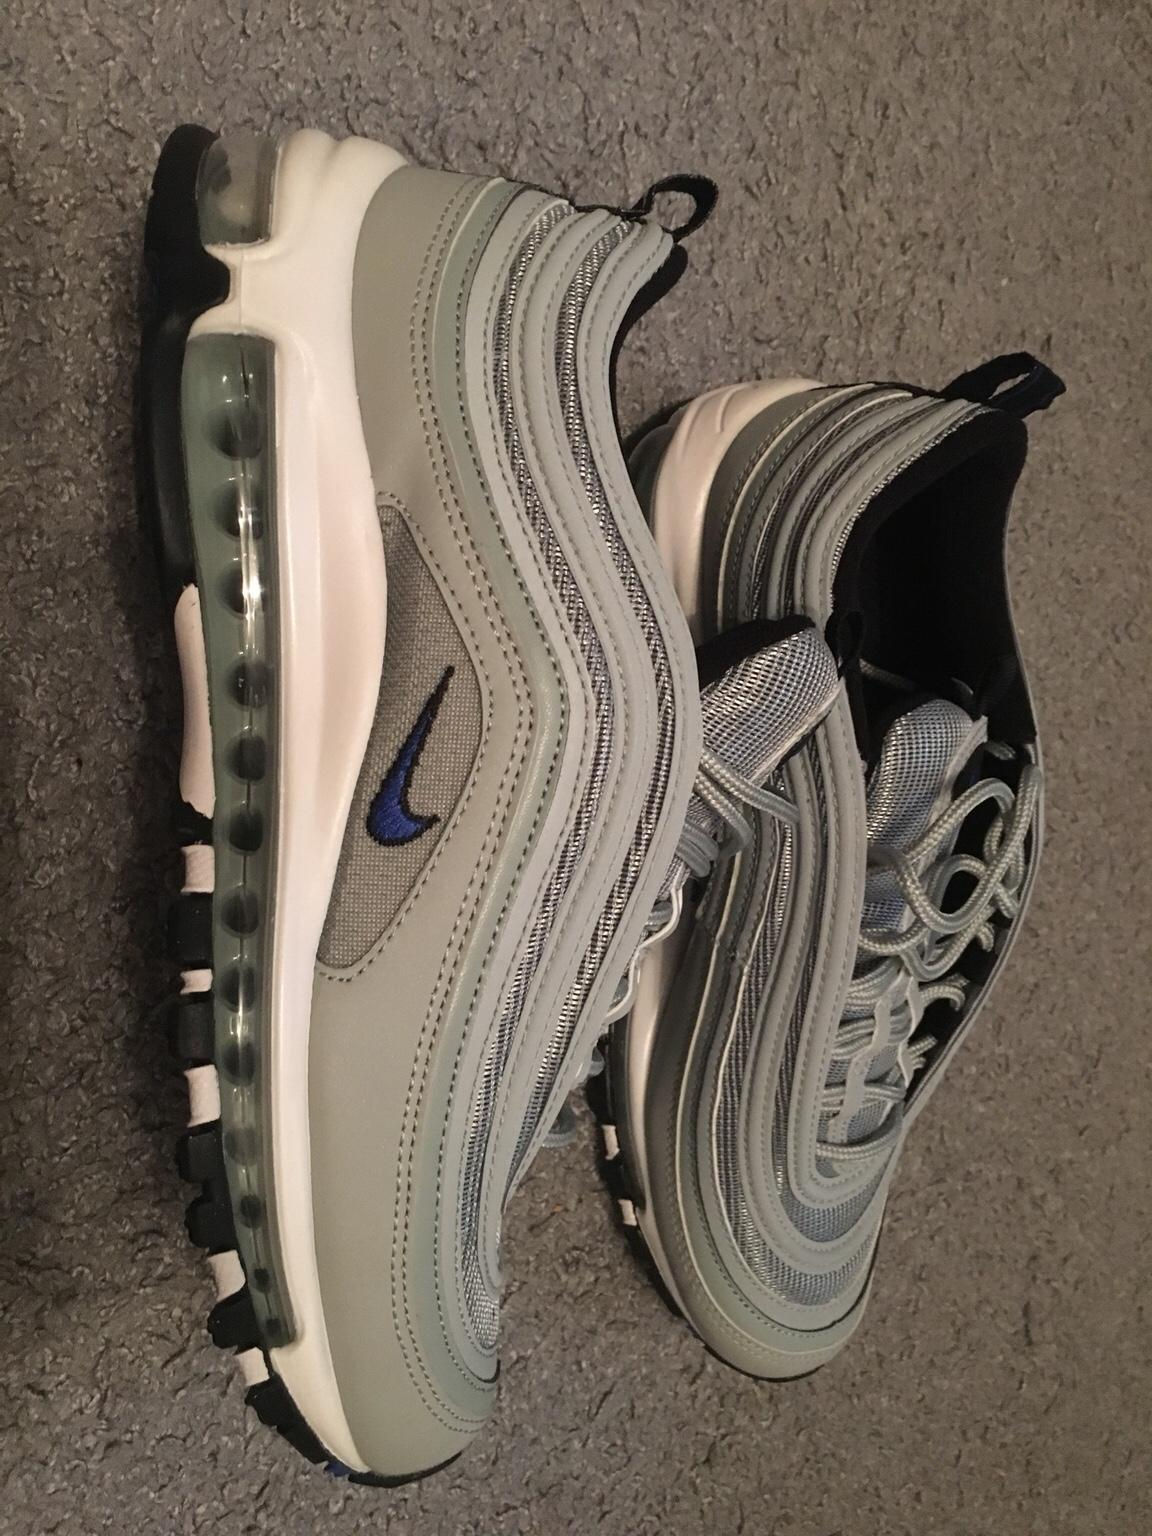 Nike air max 97 in 14554 Seddiner See for €120.00 for sale